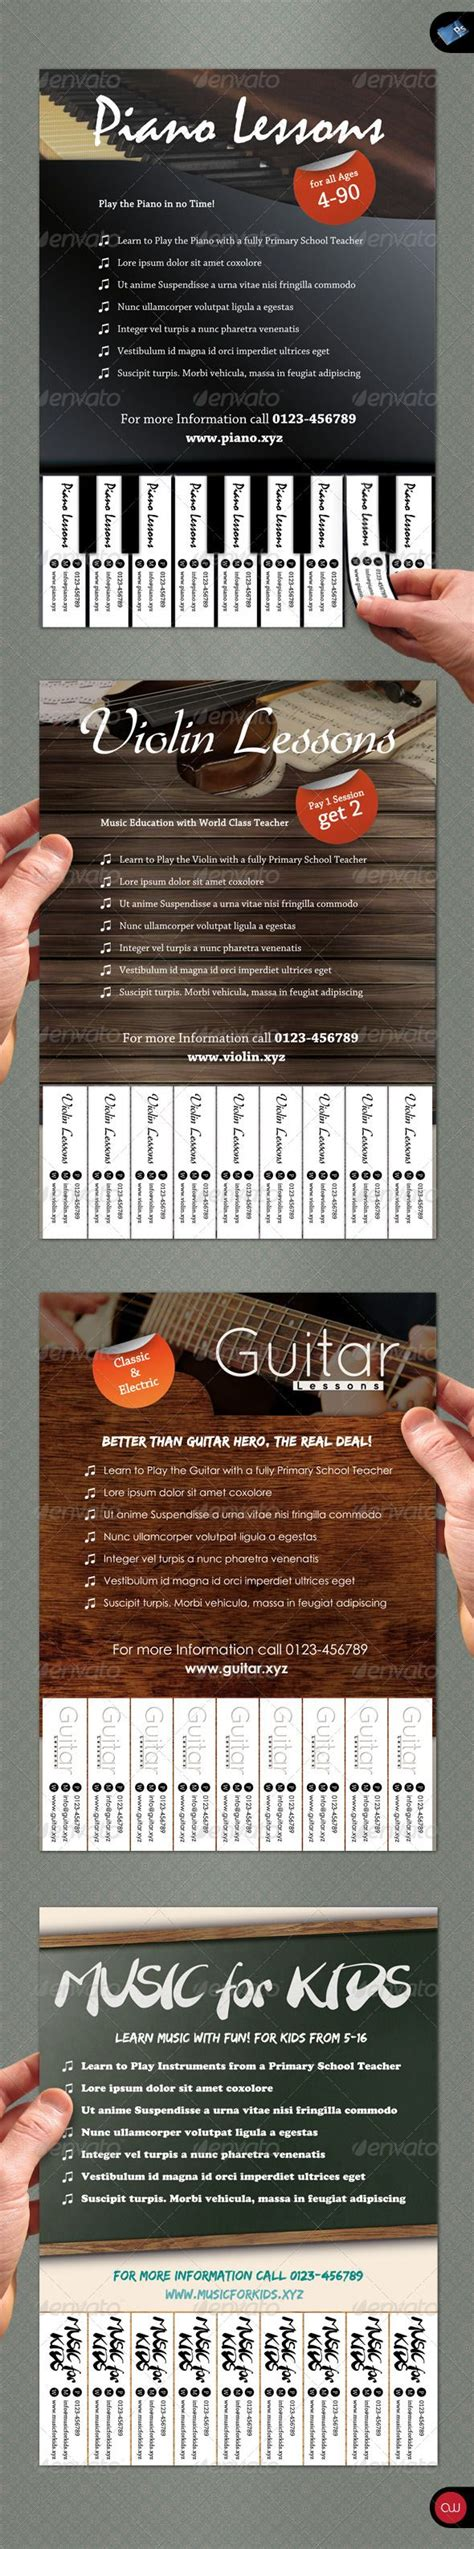 91 Best Images About Print Templates On Pinterest Fonts Flyer Template And Cd Cover Tear Flyer Template Illustrator